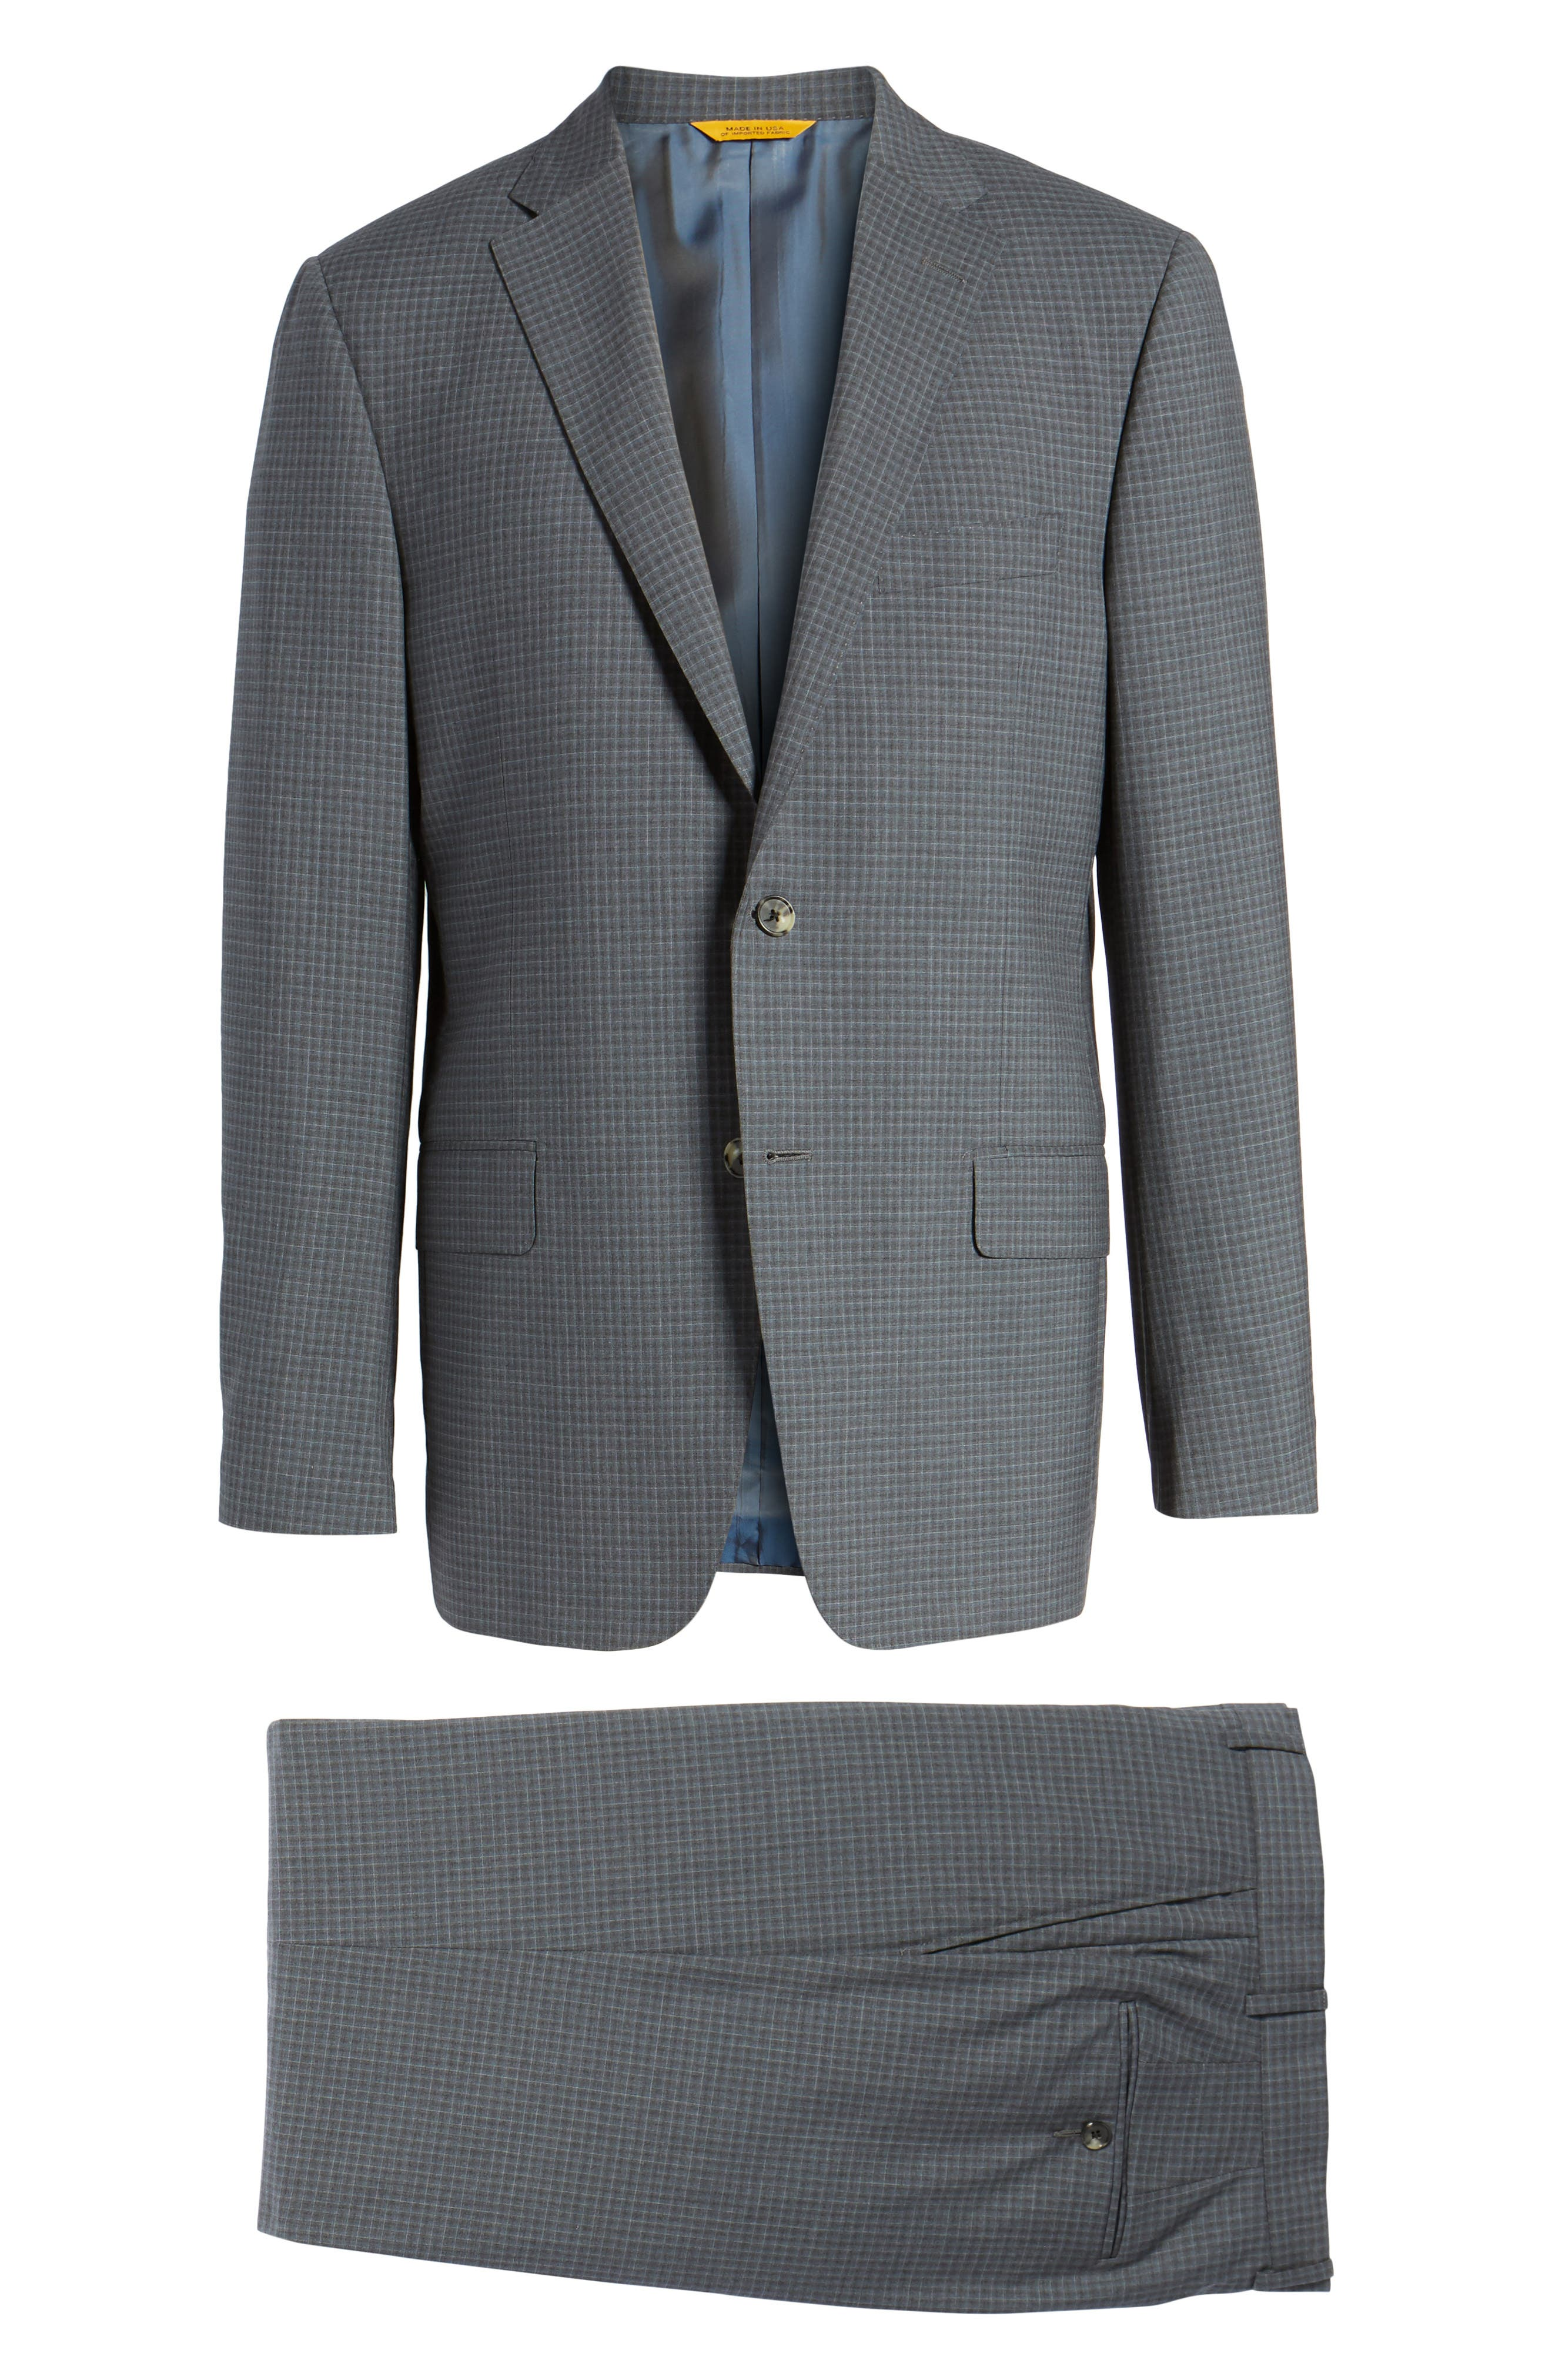 Classic B Fit Check Wool Suit,                             Alternate thumbnail 8, color,                             Charcoal